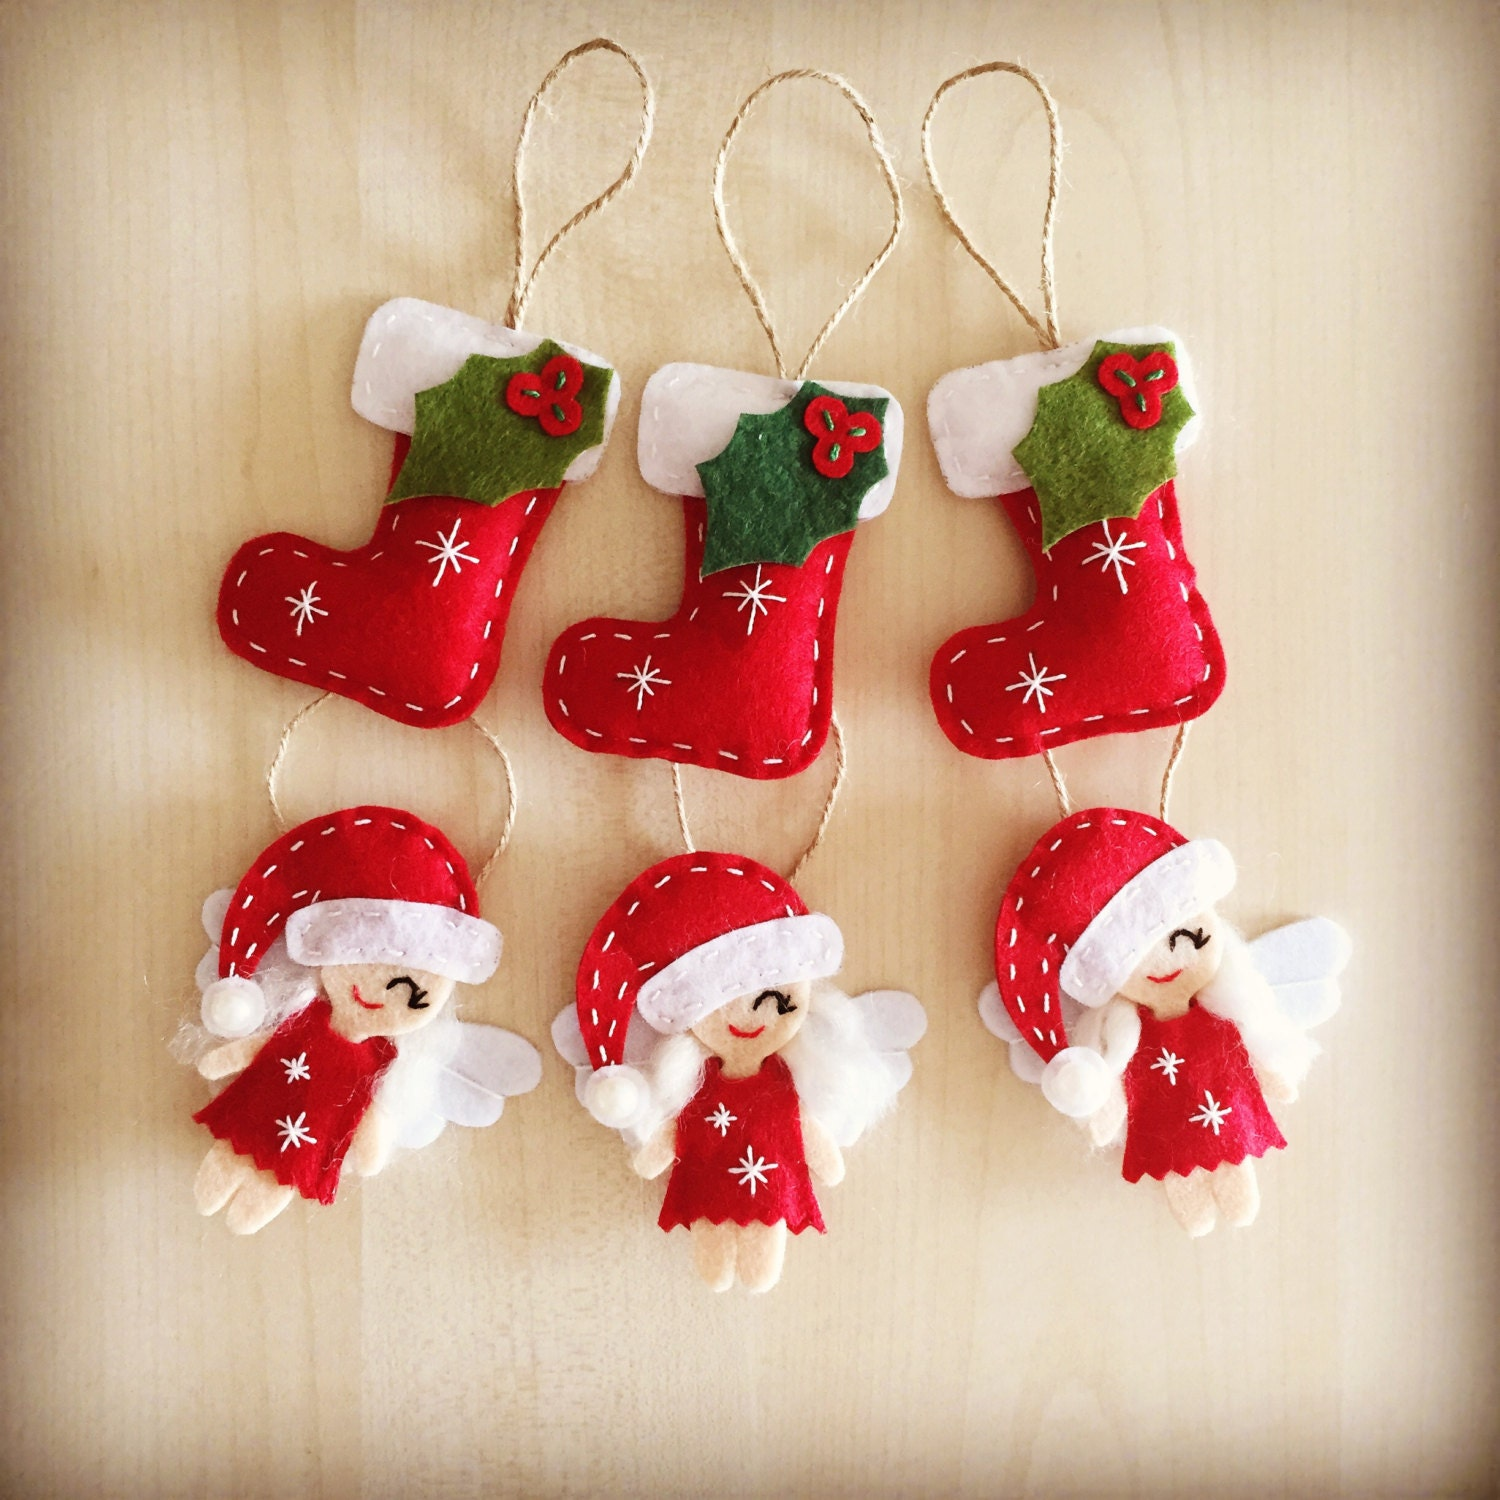 Christmas Decor. Set Of 6 Christmas Ornaments. Handmade Felt